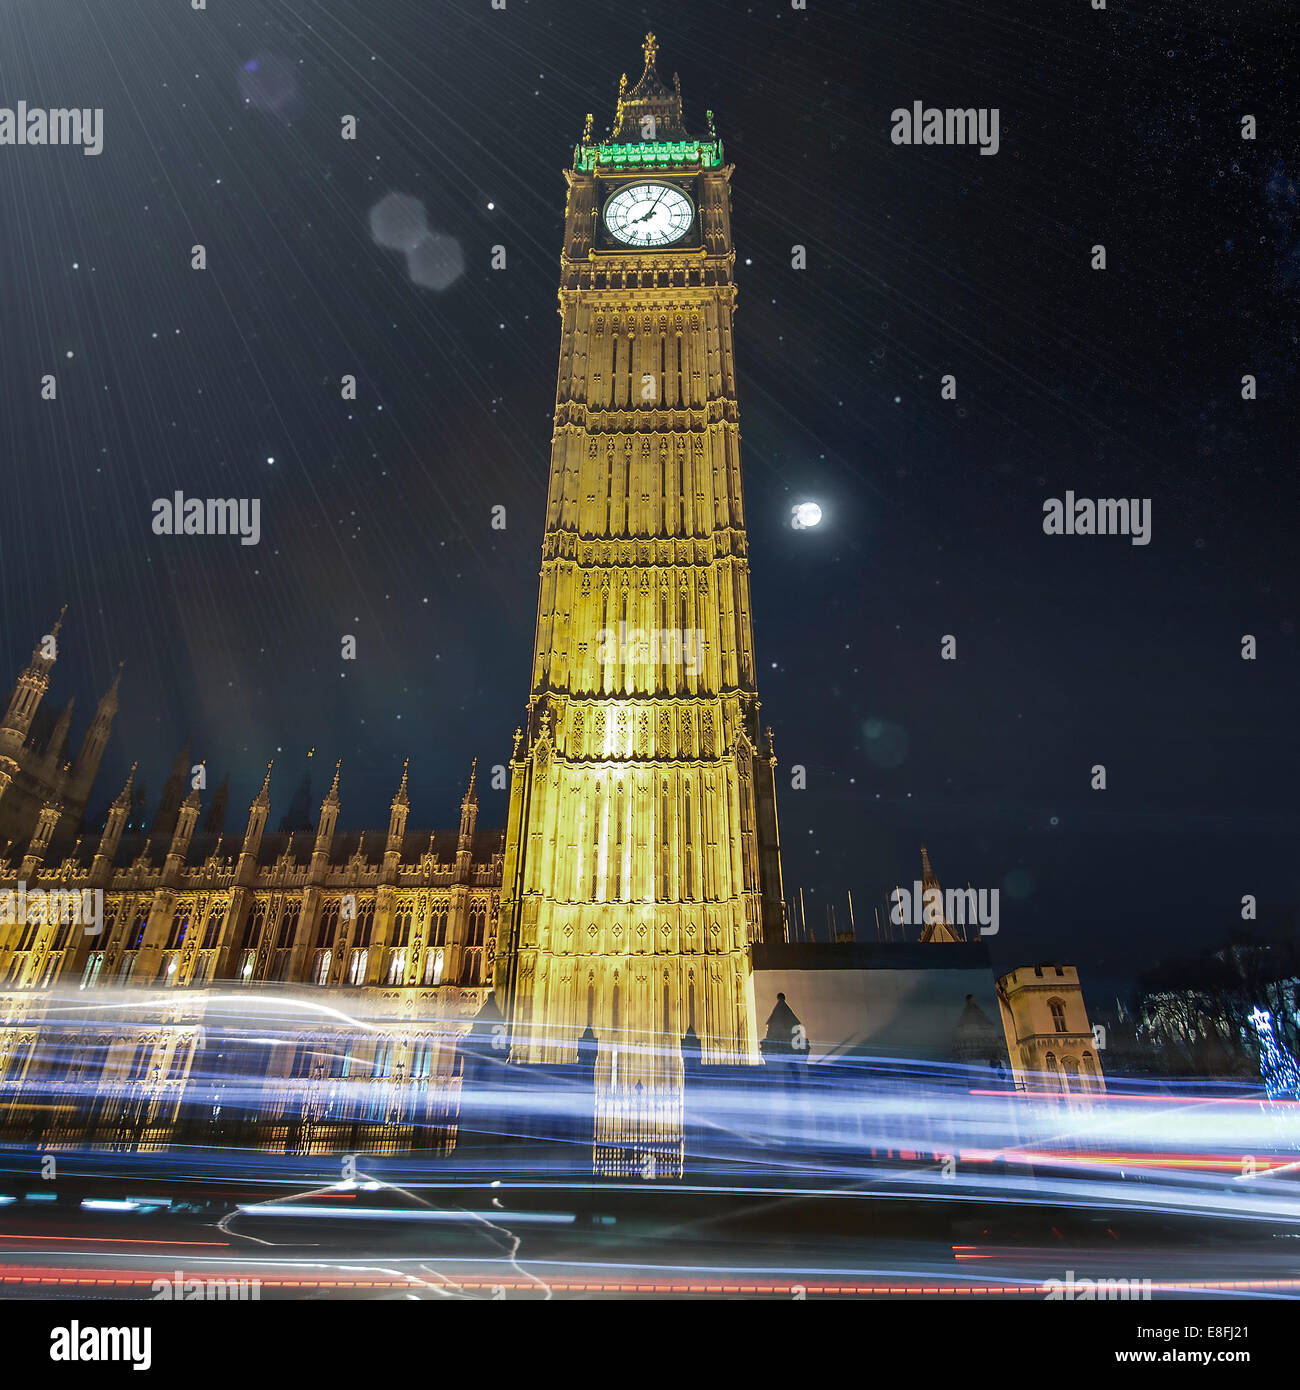 Big Ben at night with light trails, London, England, UK - Stock Image